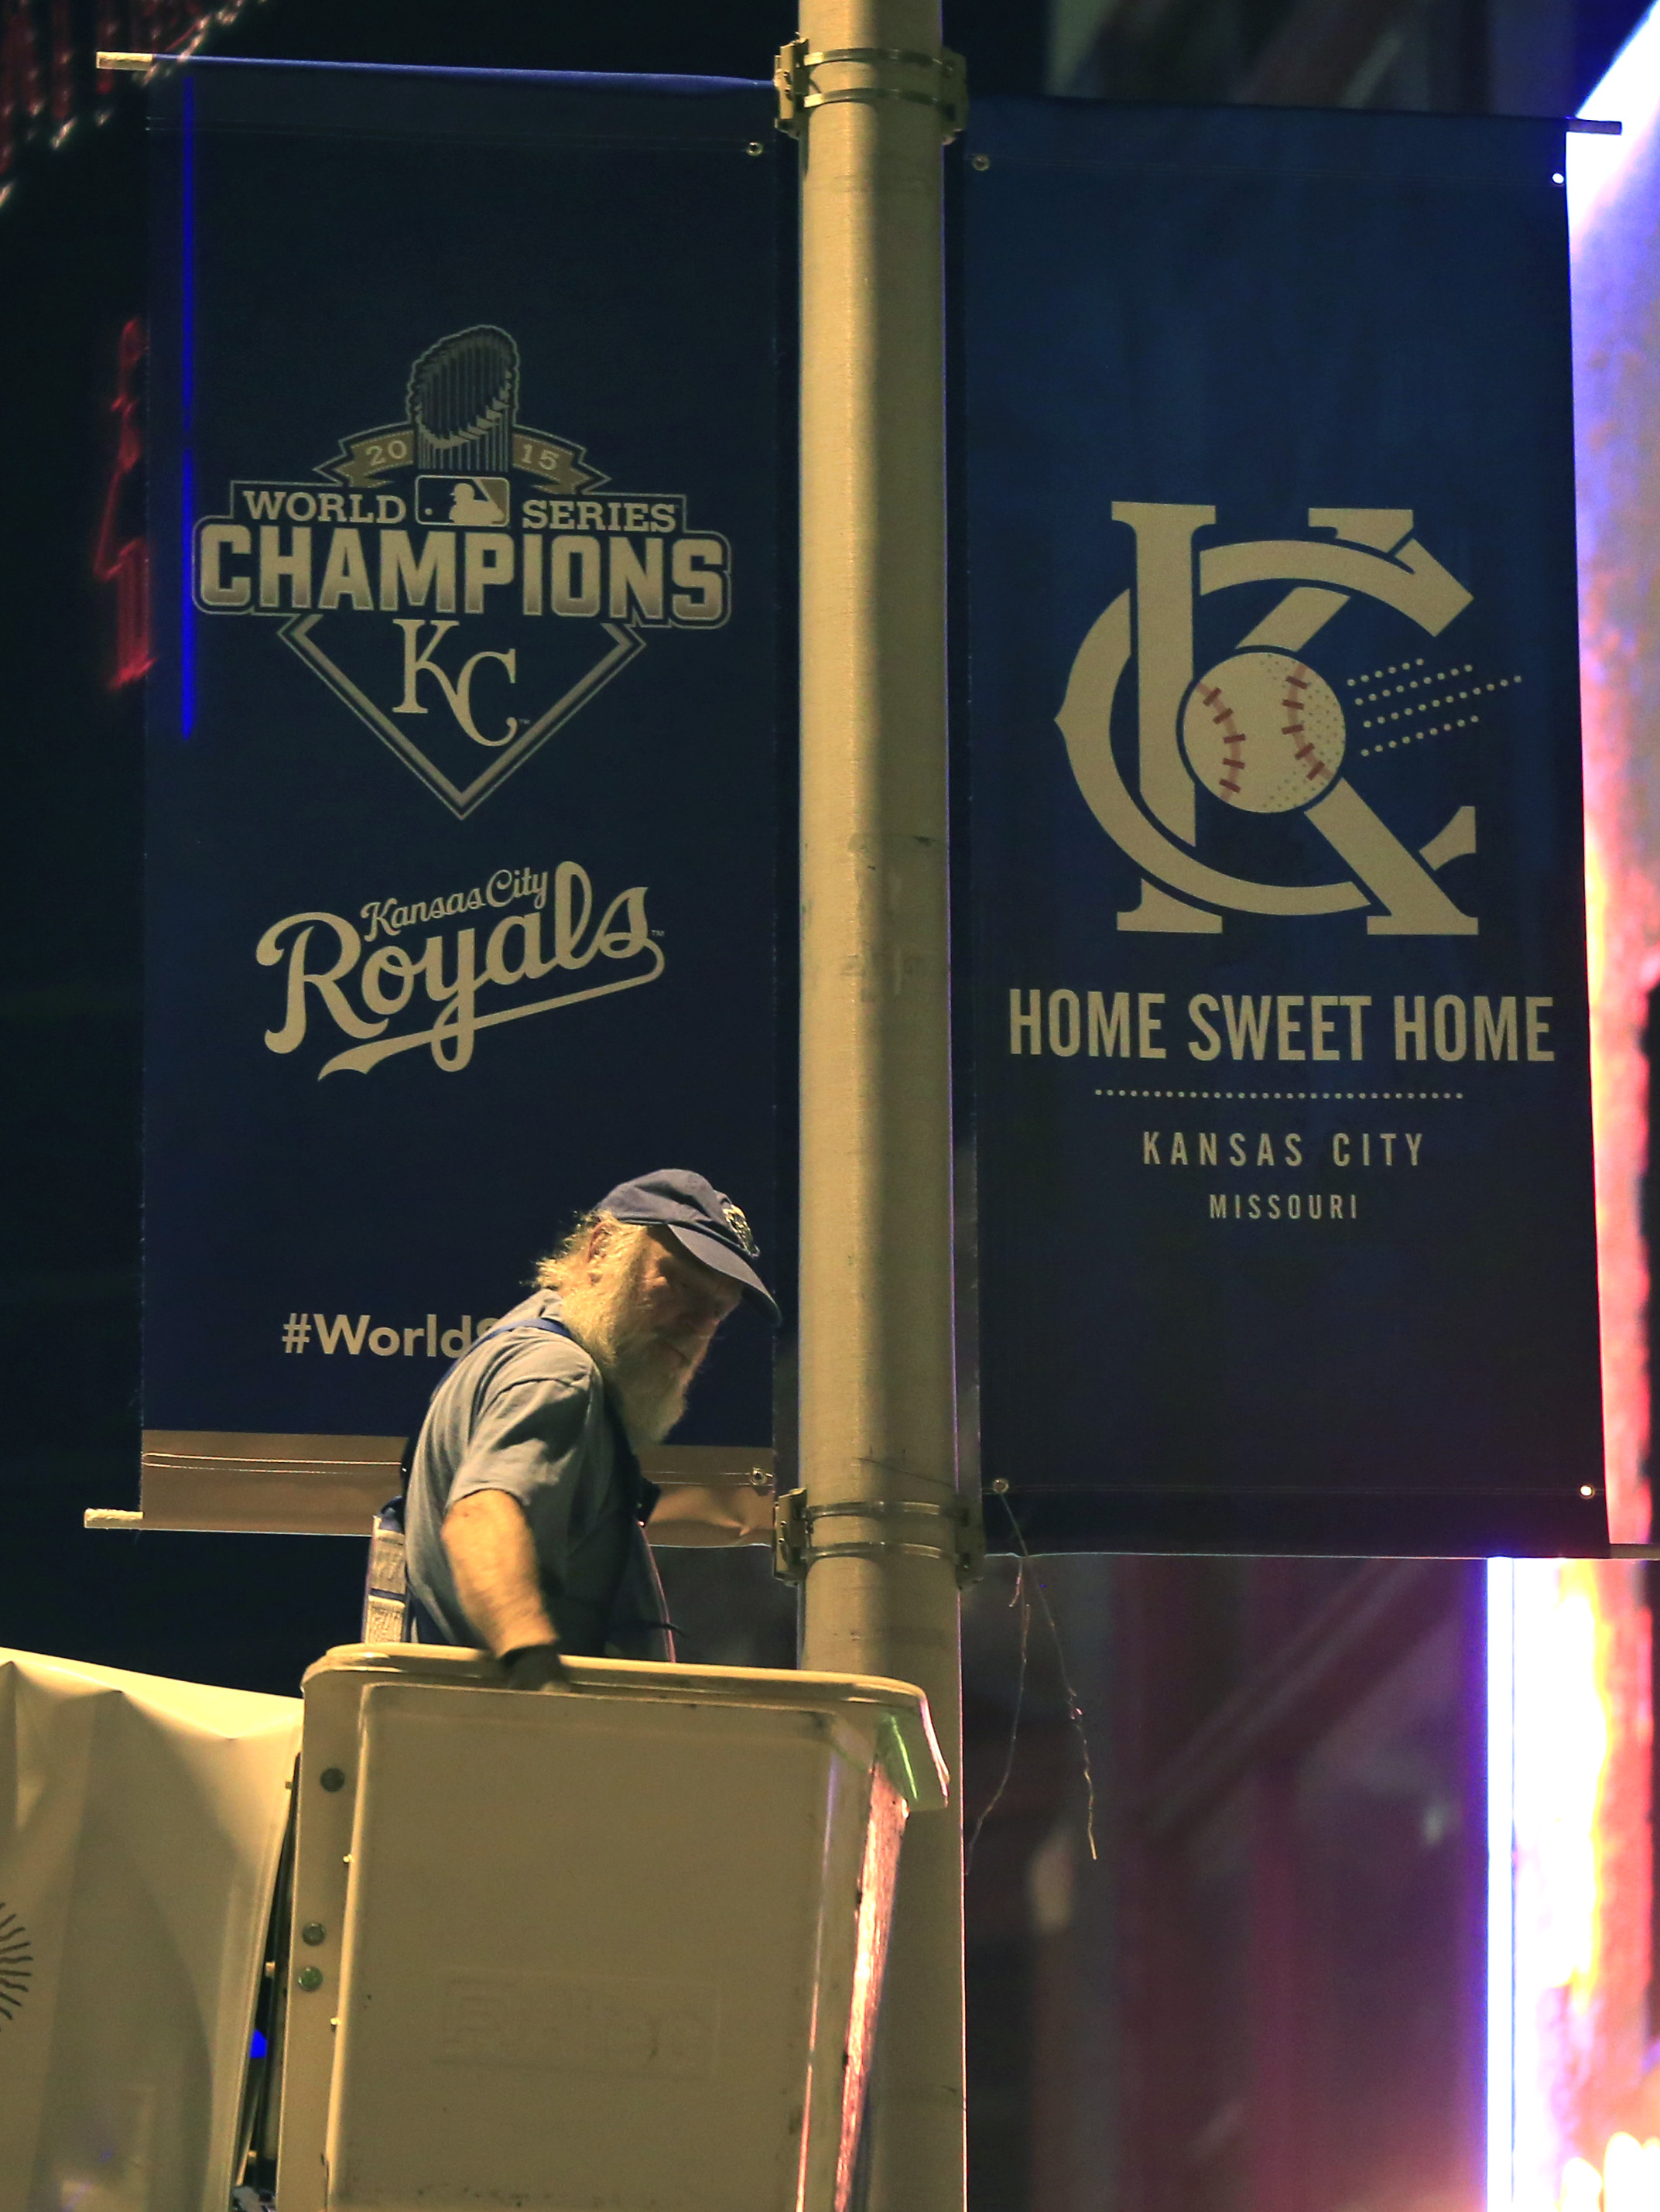 A city worker hangs World Series banners on street light poles in Kansas City, Mo., Monday, Nov. 2, 2015. The Kansas City Royals defeated the New York Mets to win the World Series. (AP Photo/Orlin Wagner)